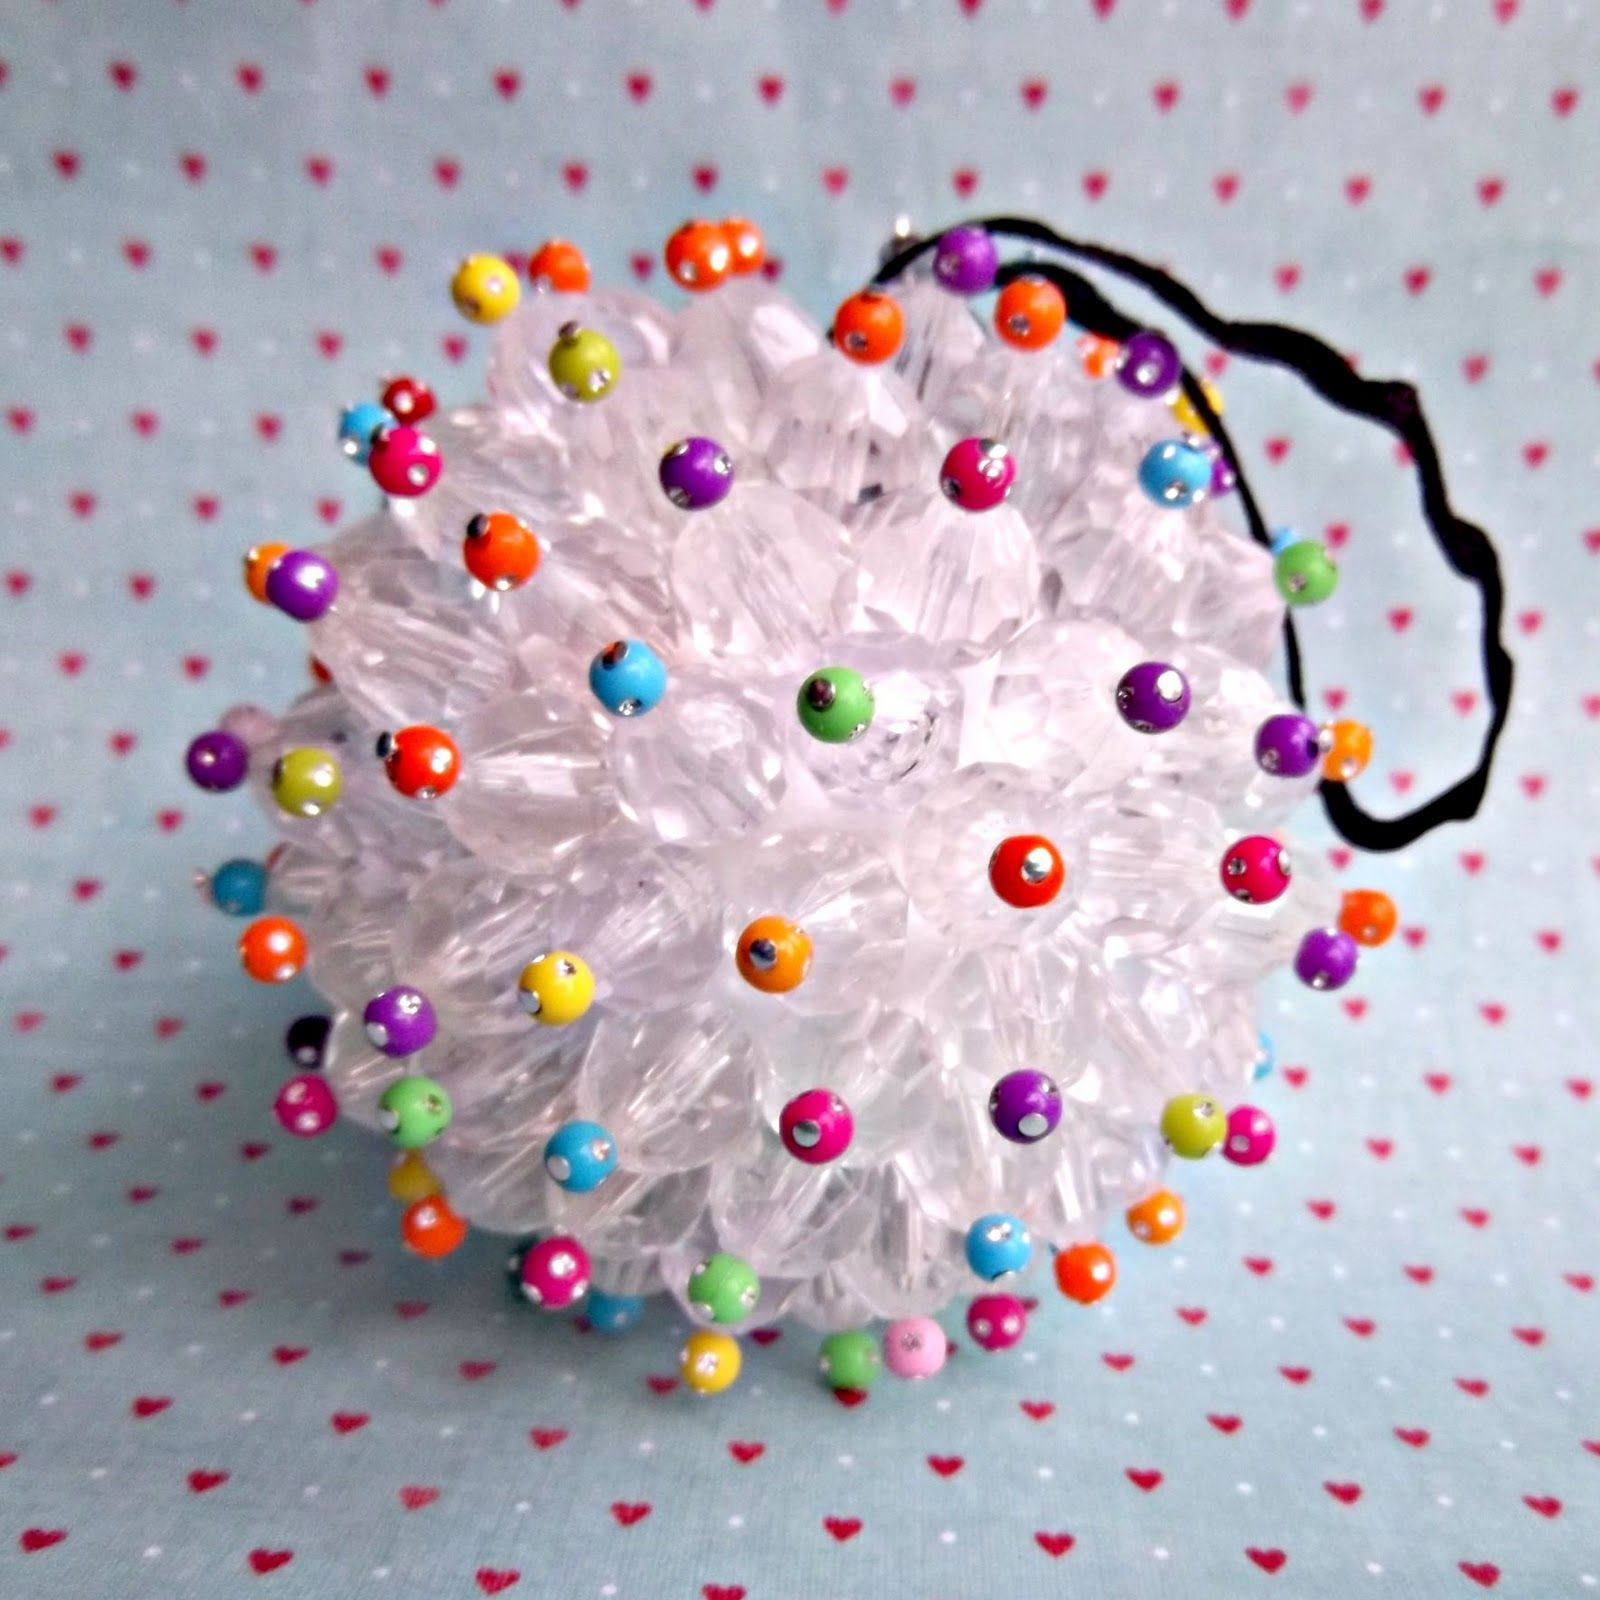 twinklyspangle: Amazingly Awesome Bauble {DIY}. Beads, pins ...